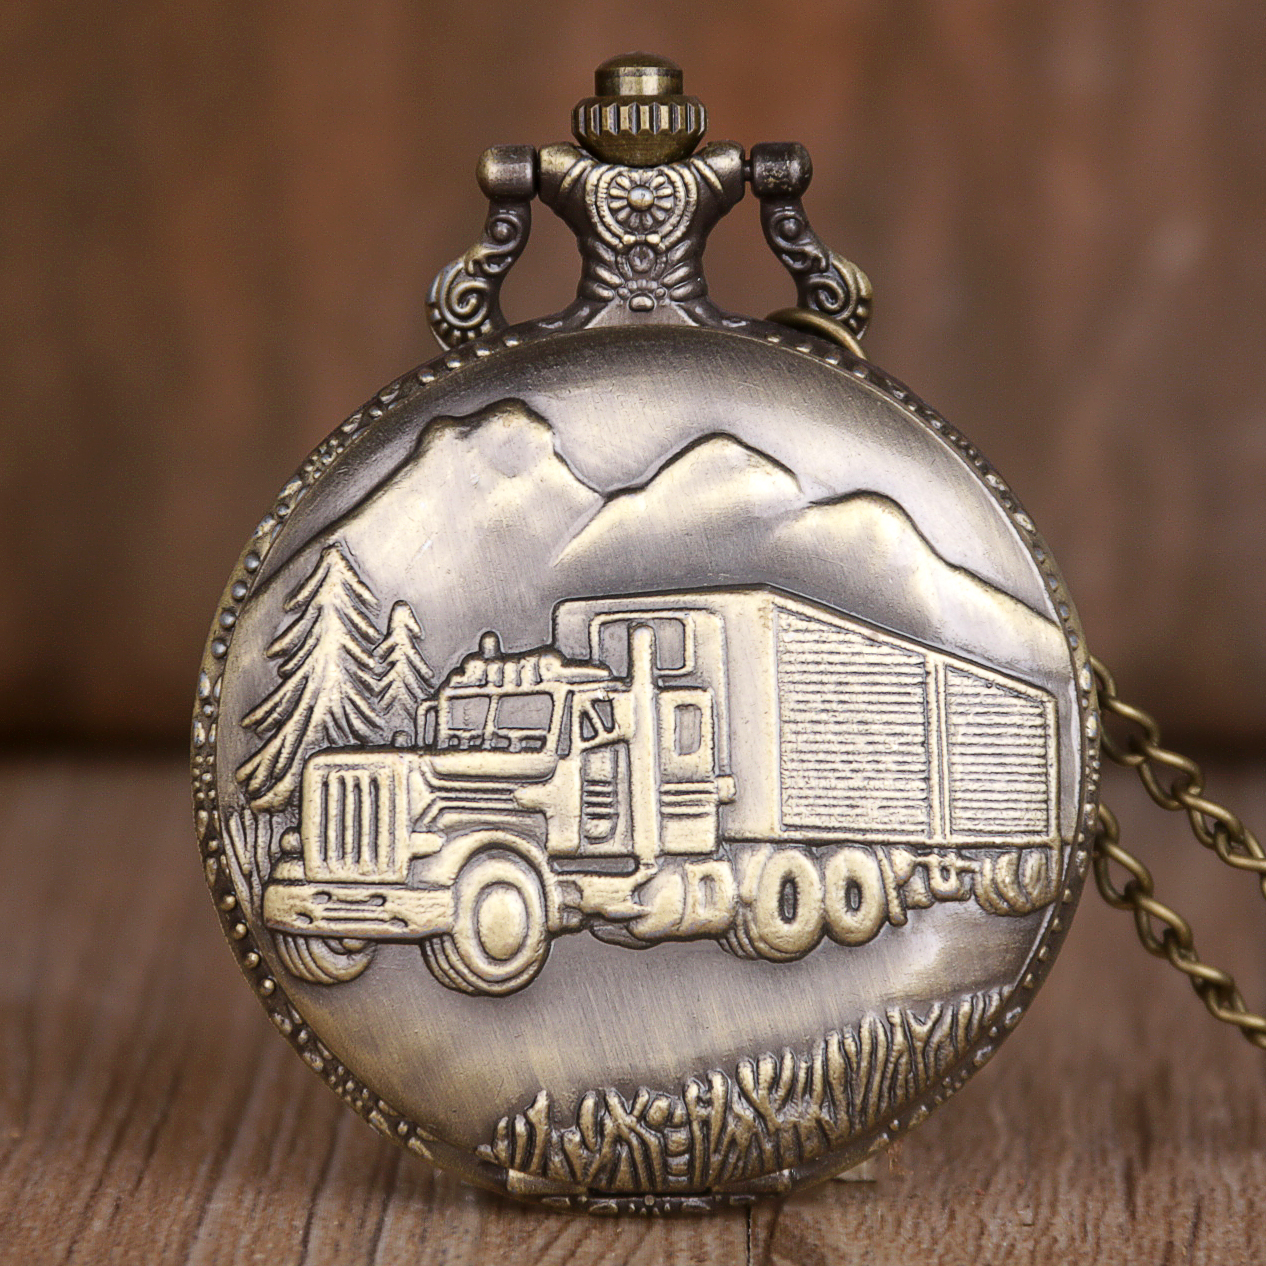 Bronze Quartz Pocket Watch Train Carving Car Design Men Clock Engraved Fob Watches With Gift TD2042 Gifts Drop Shipping